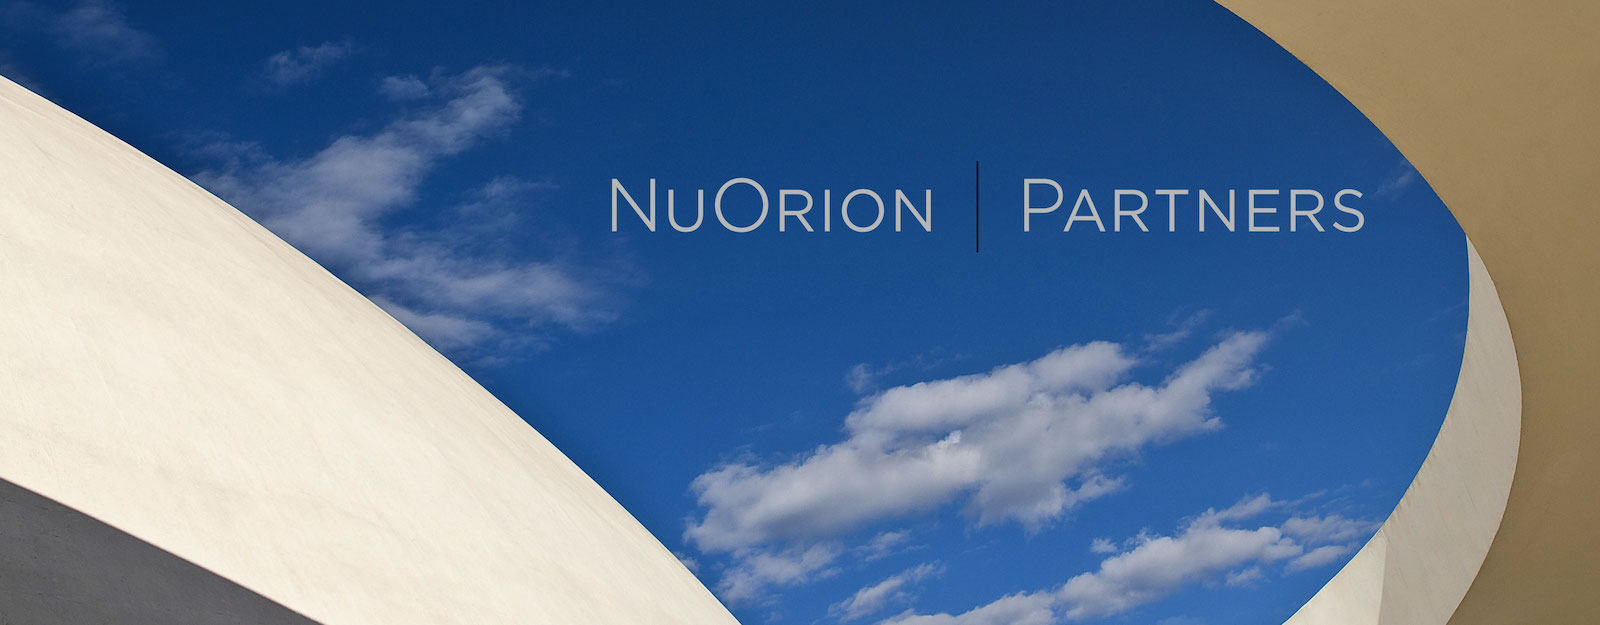 NuOrion_Partners